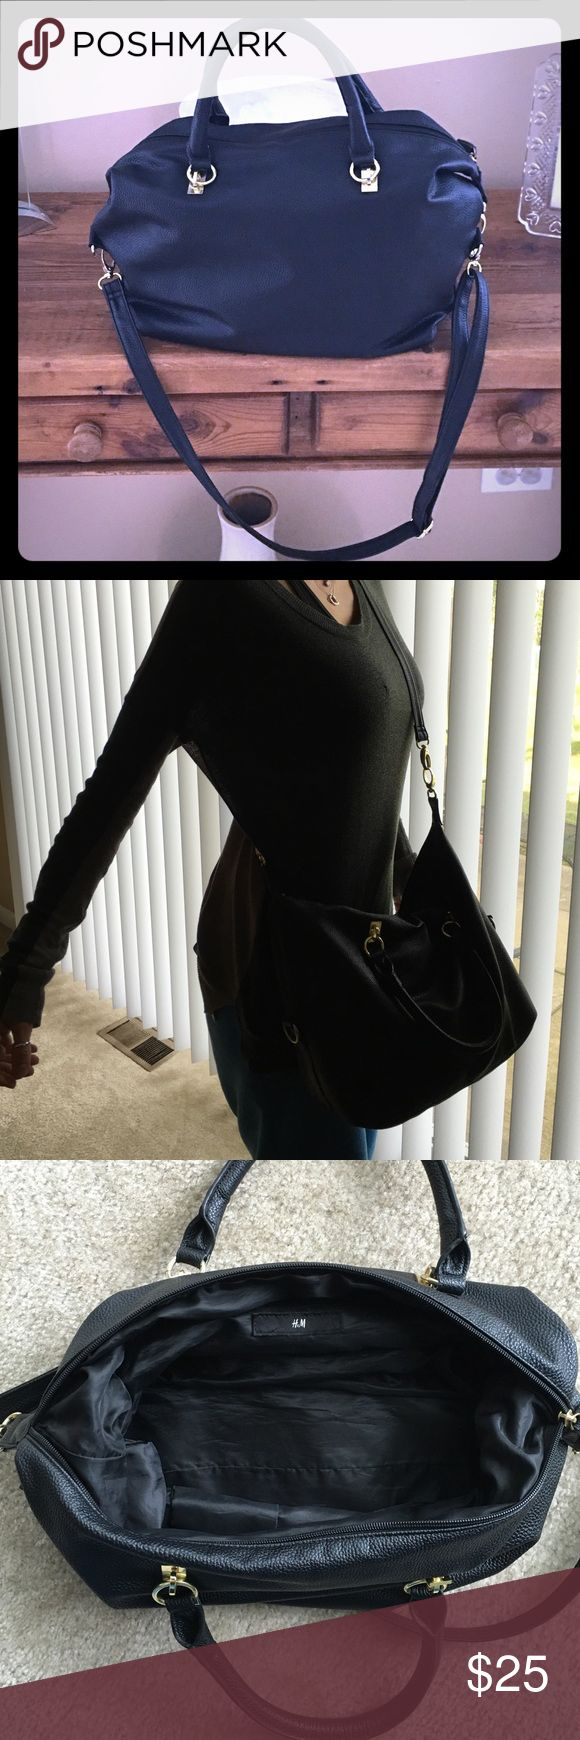 H&M Purse Hobo/satchel/crossbody bag. Faux leather. I bought it from H&M. Great condition with one small flaw where the hardware from the handle meets the bag. Please see attached photo. Thx! H&M Bags Crossbody Bags